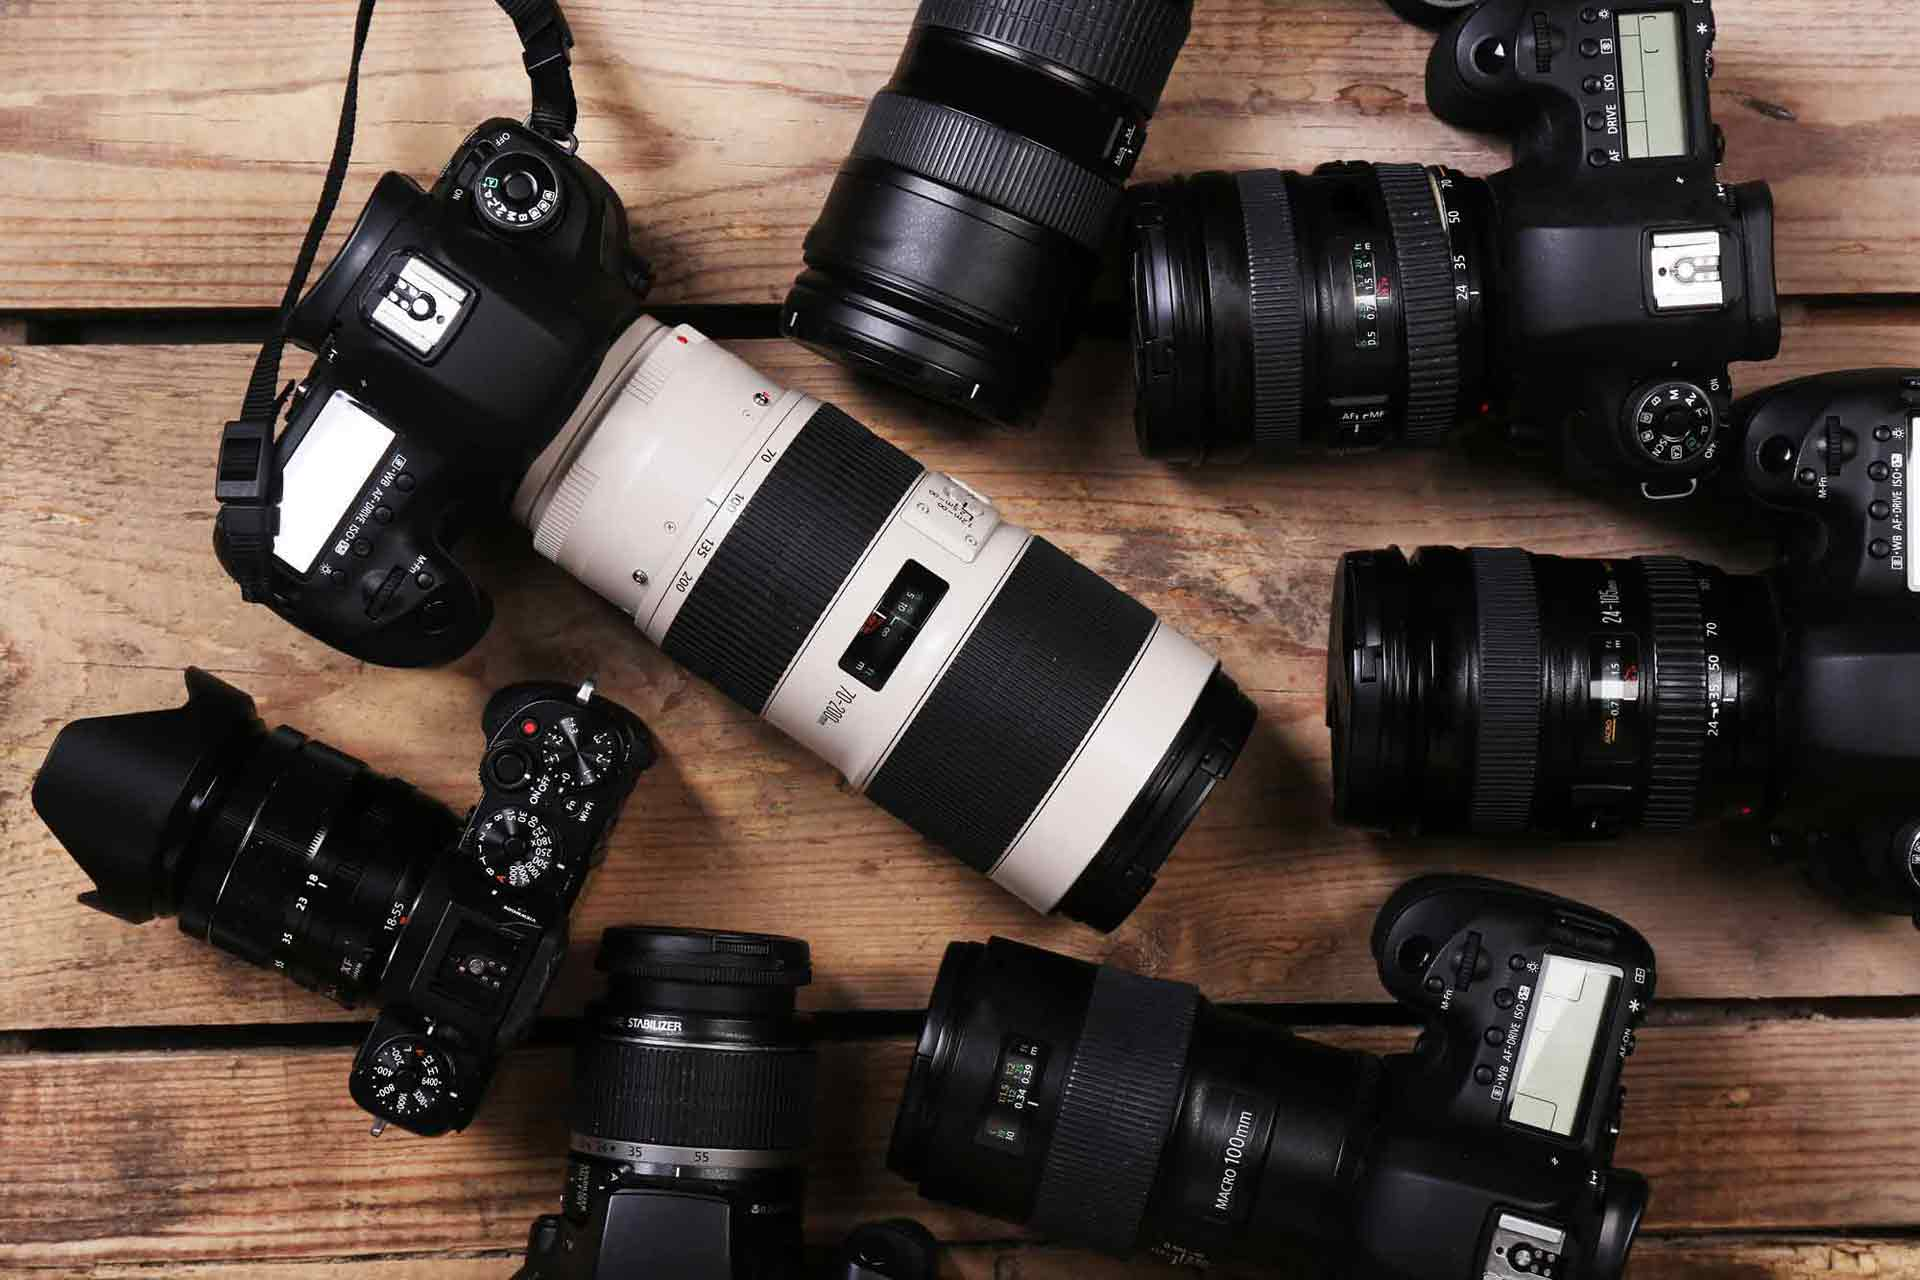 The BEST Travel Cameras in 2021 (Every Budget and Type)